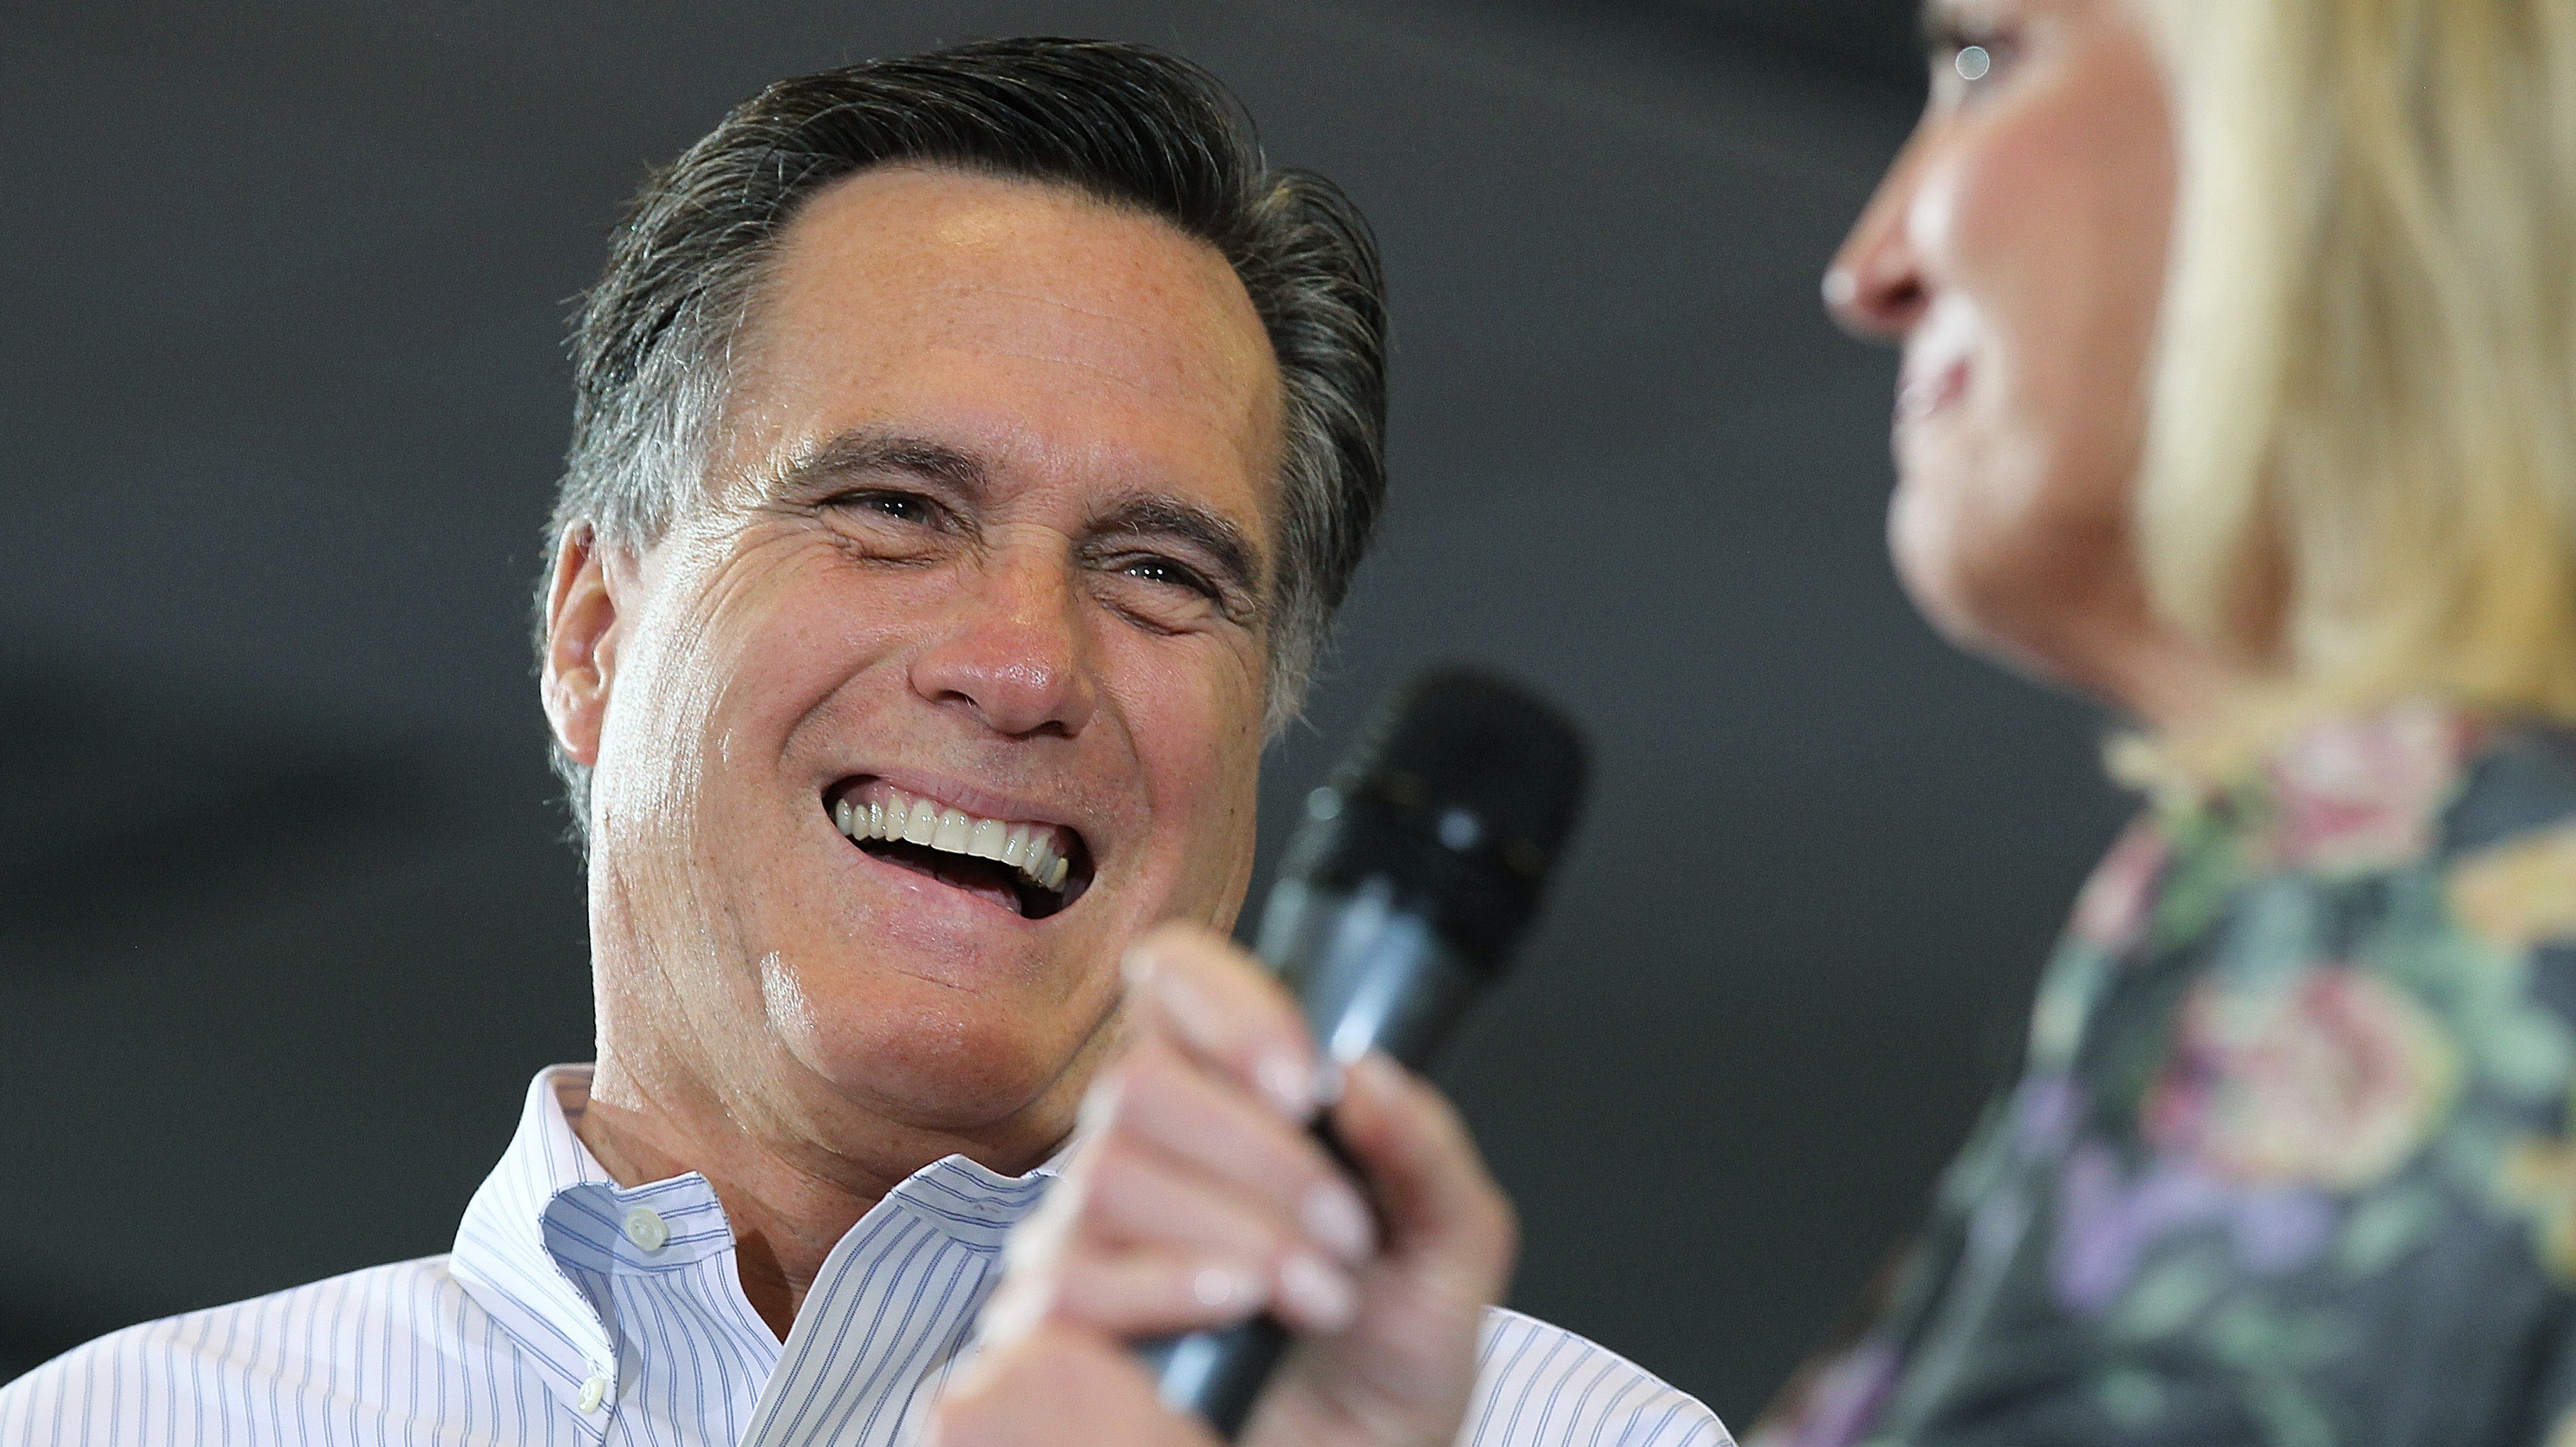 Romney super PAC brings in $6.4 million in February